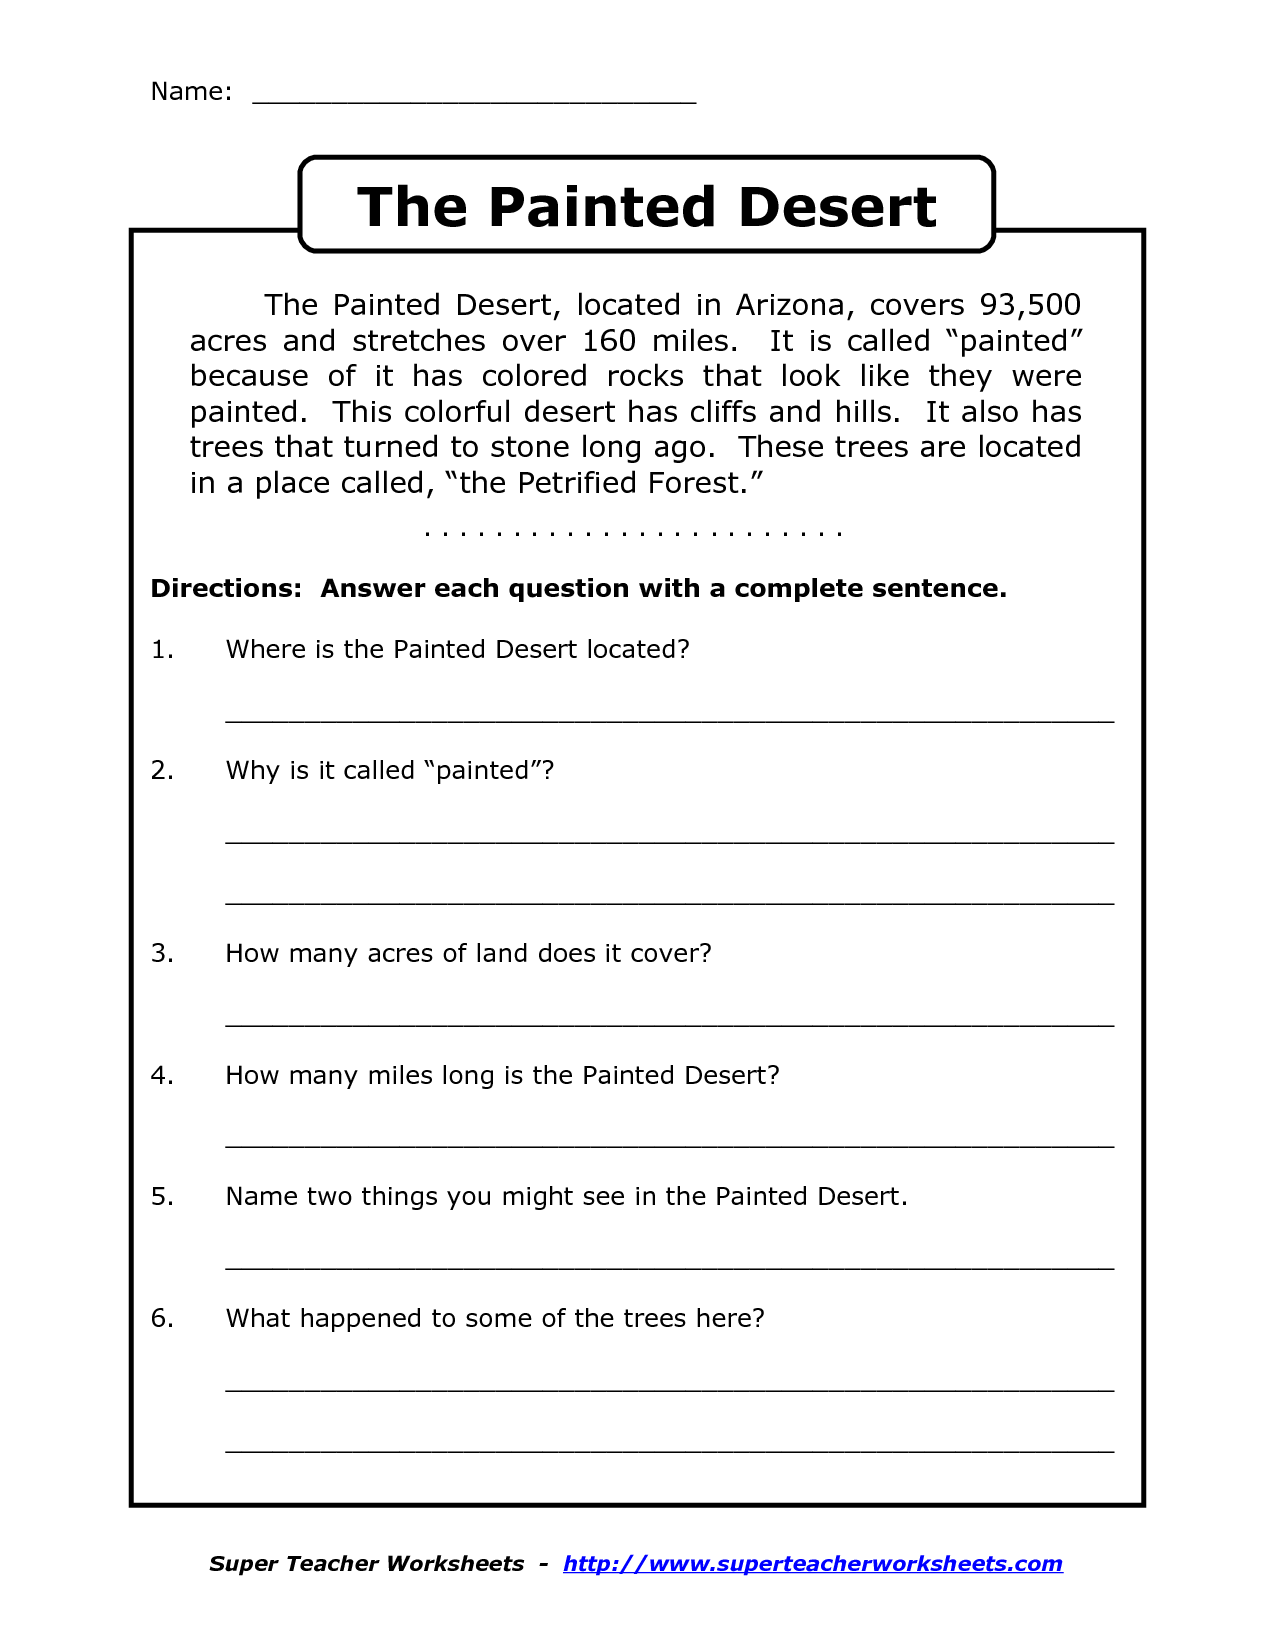 Reading Worksheets For 4th Grade | Reading Comprehension